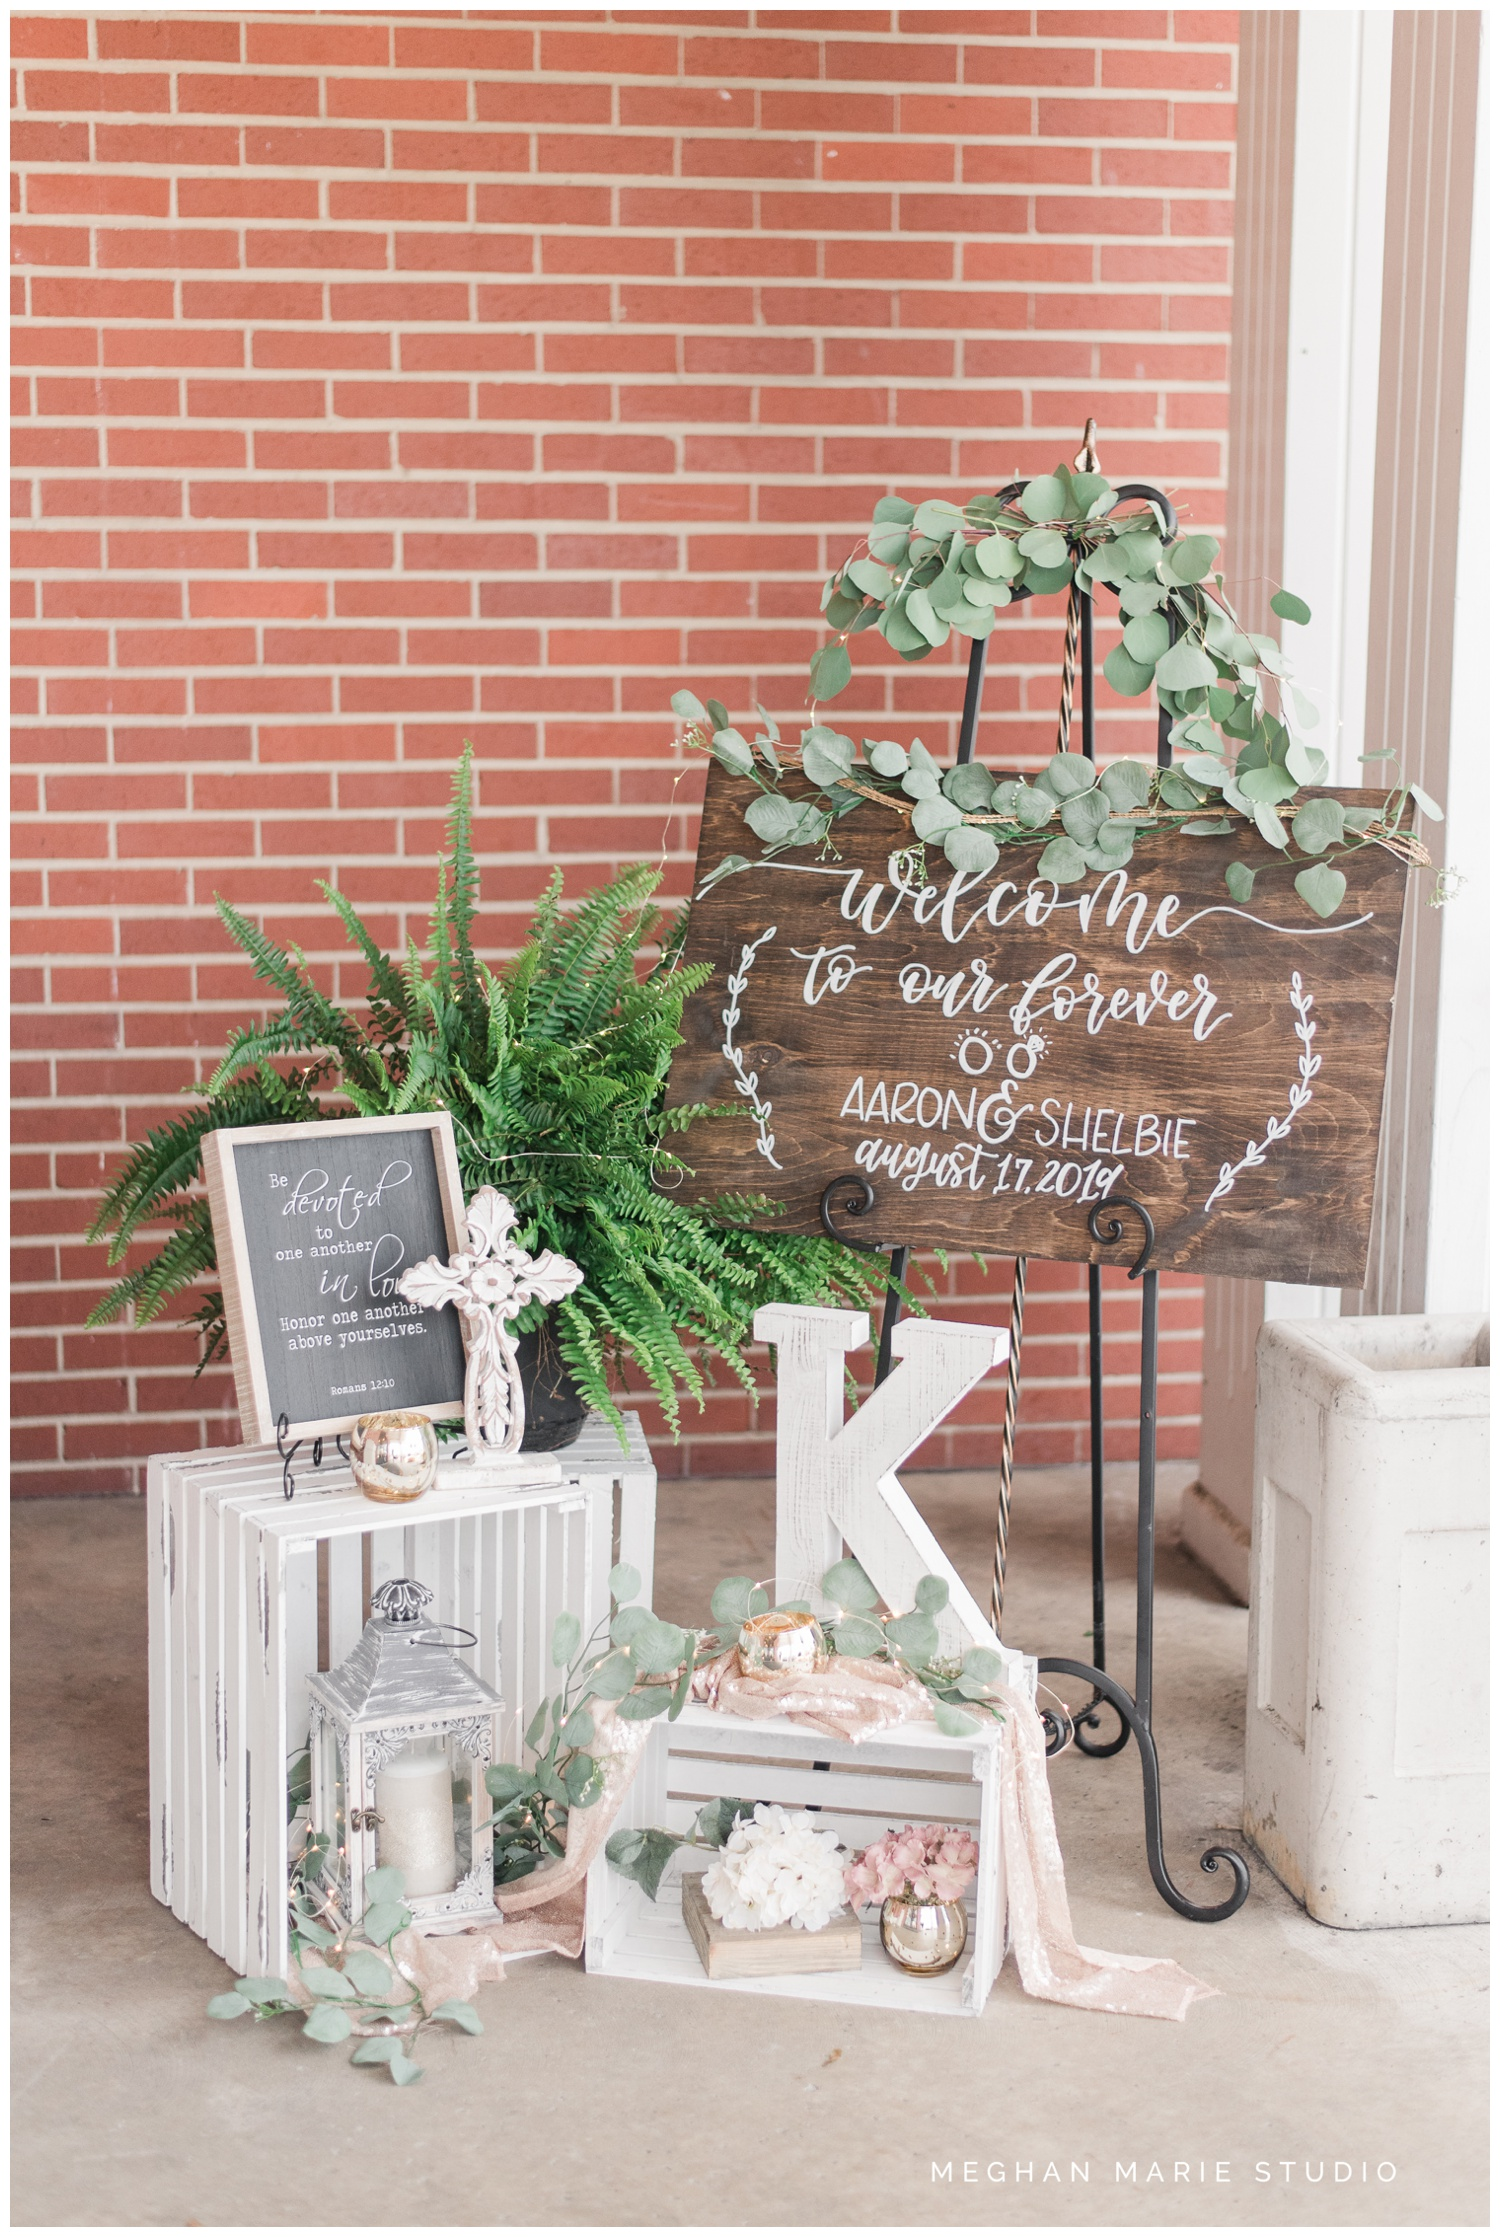 meghan marie studio wedding photographer ohio troy dayton columbus small town rustic rural farm cows vintage mauves dusty rose pinks whites ivorys grays f1 sound paper lanterns pearls_0647.jpg